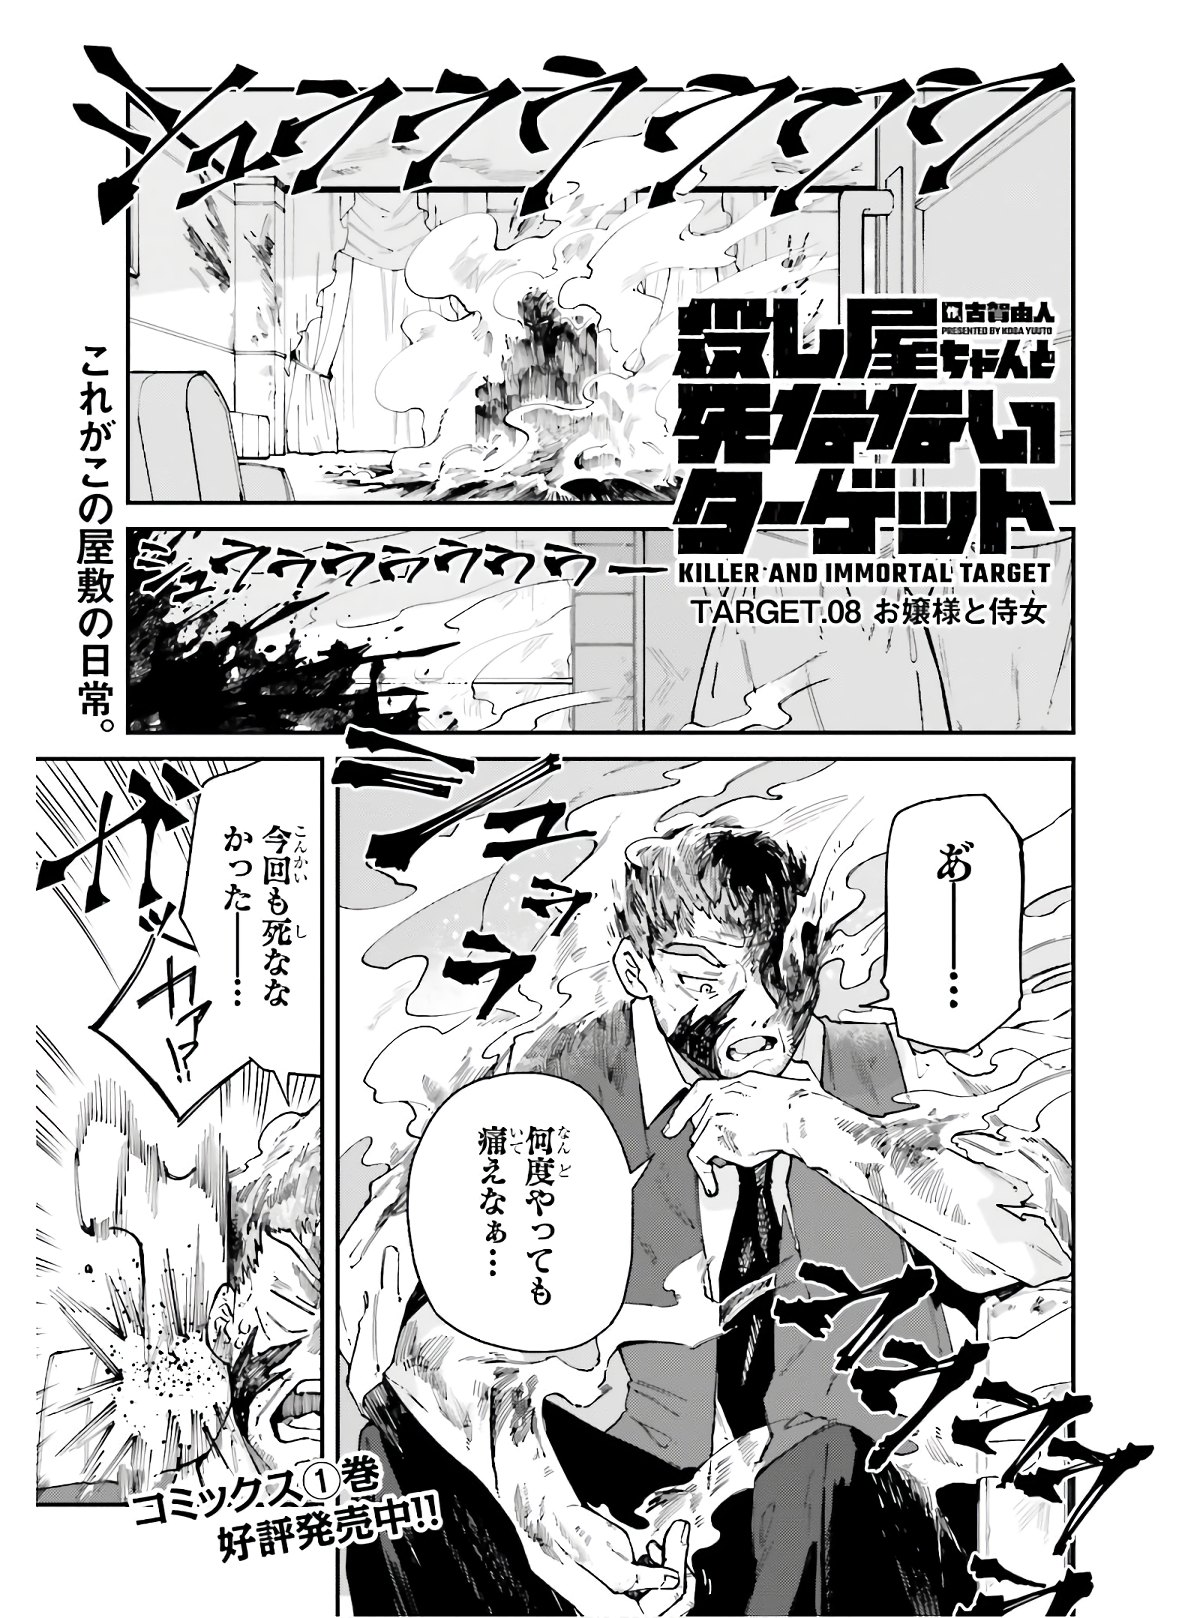 Manga Raw Killer and Immortal Target Chapter 08